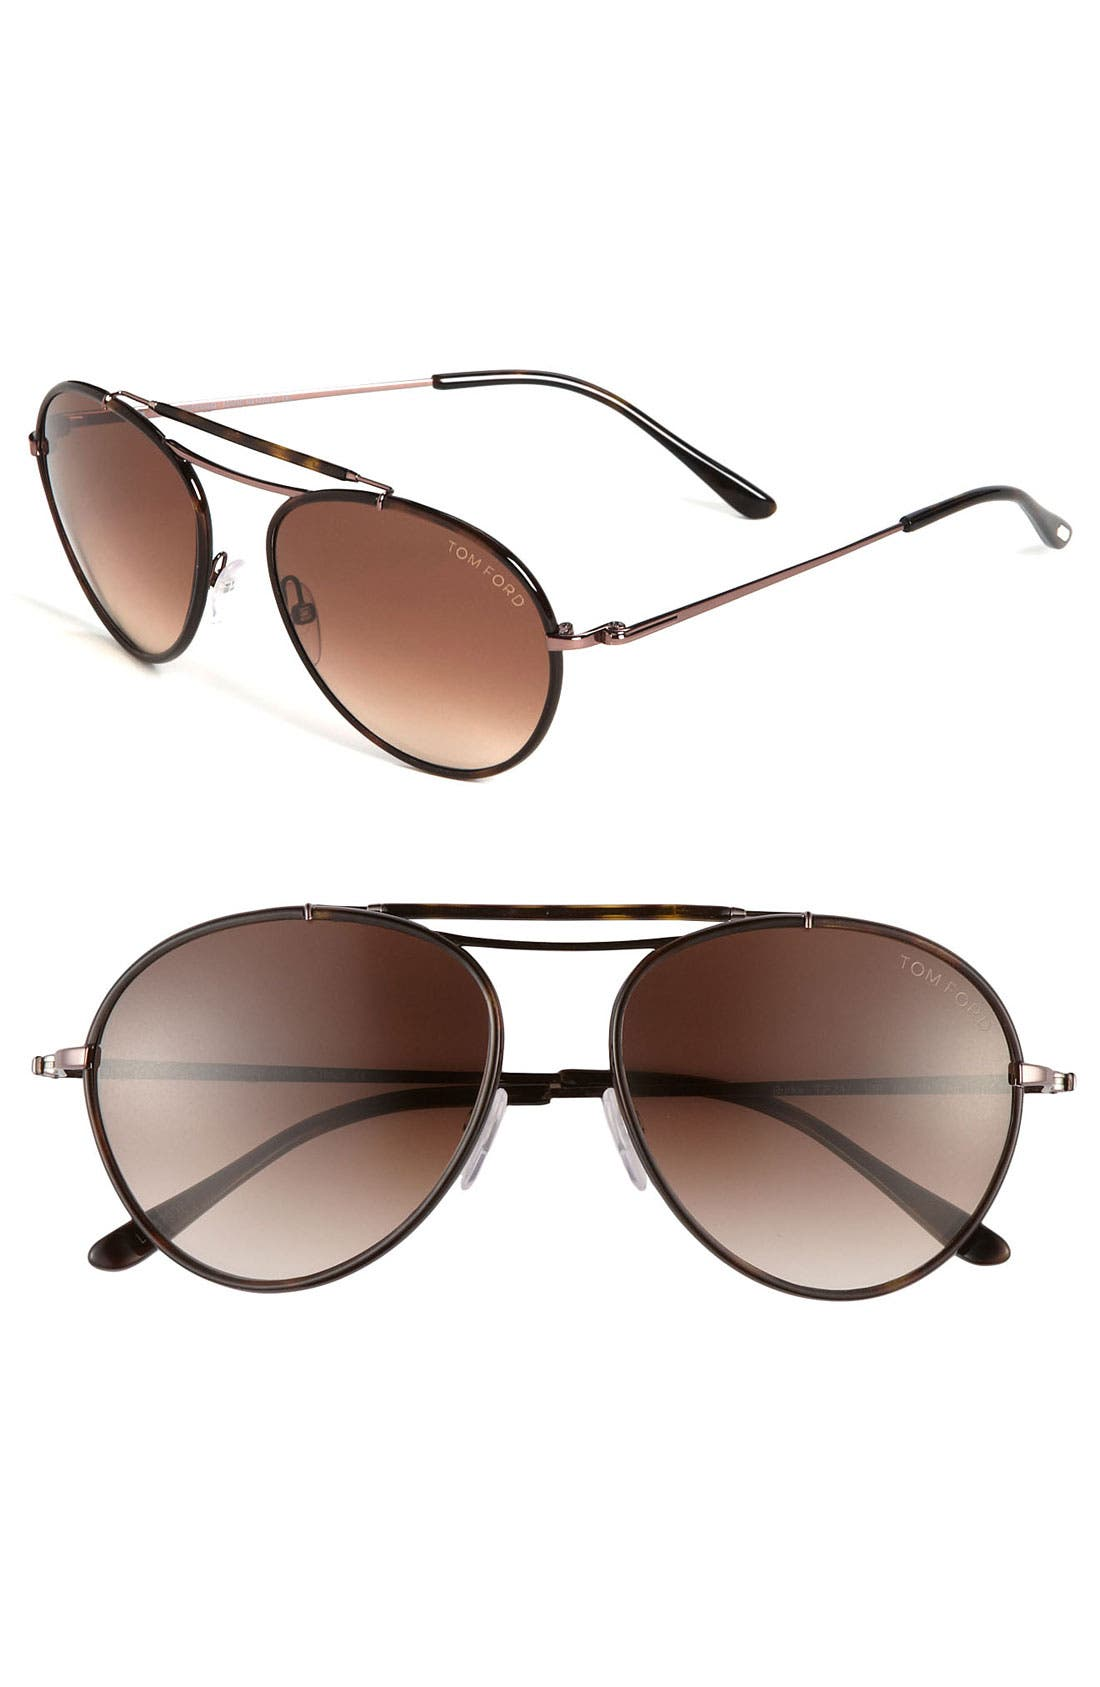 Main Image - Tom Ford Aviator Sunglasses